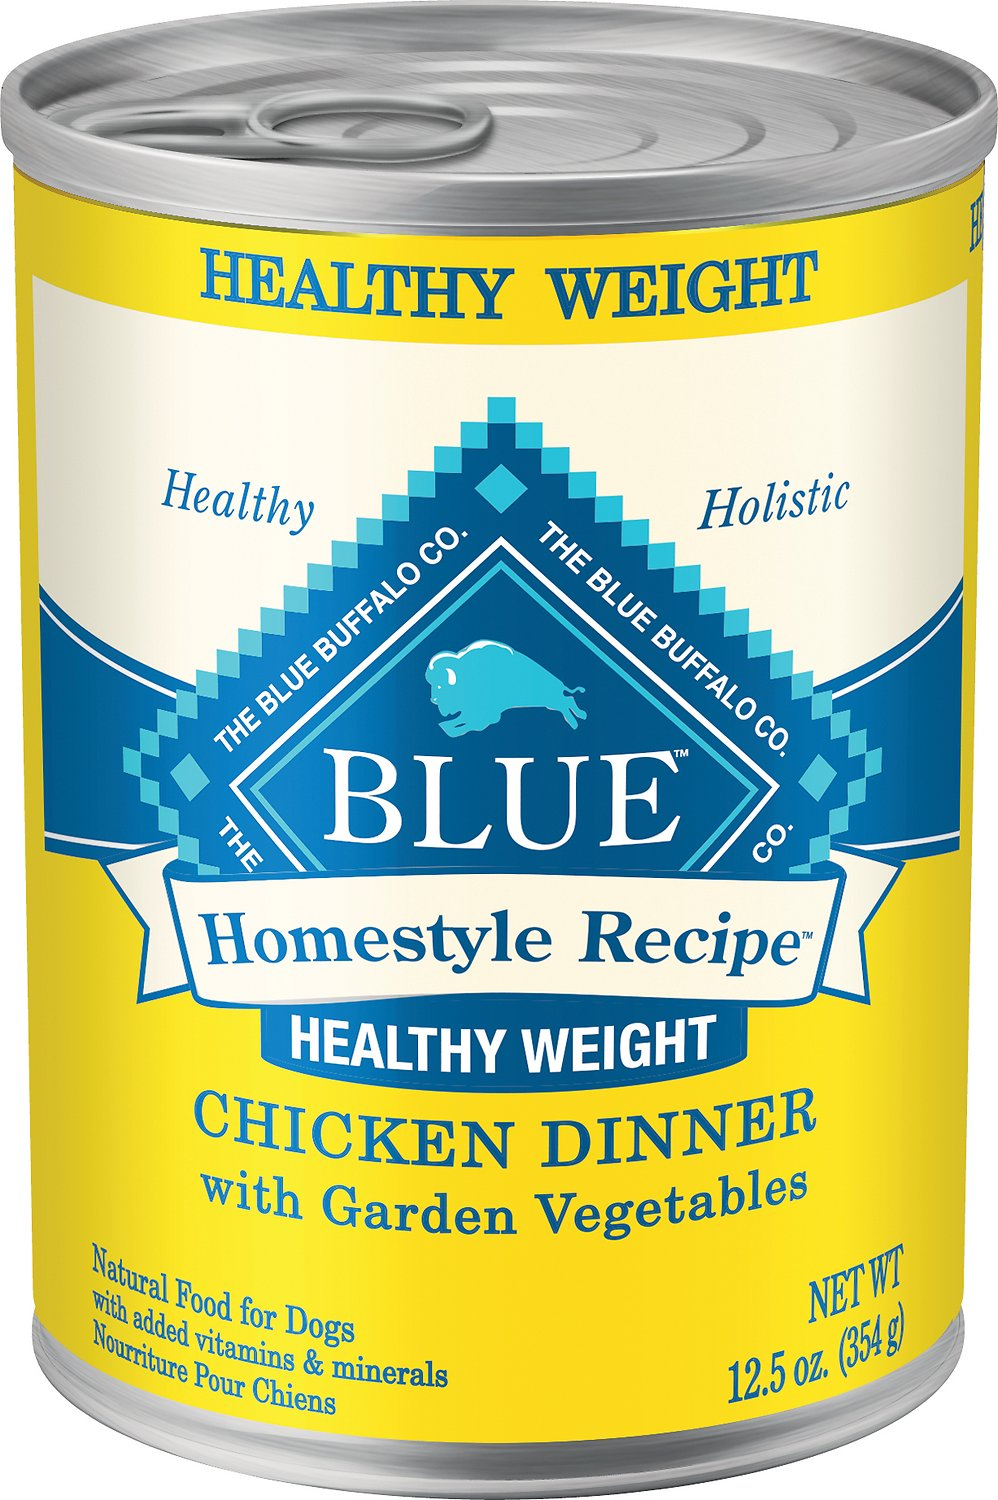 Blue Buffalo Homestyle Recipe Healthy Weight Chicken Dinner with Garden Vegetables & Brown Rice Canned Dog Food, 12.5-oz